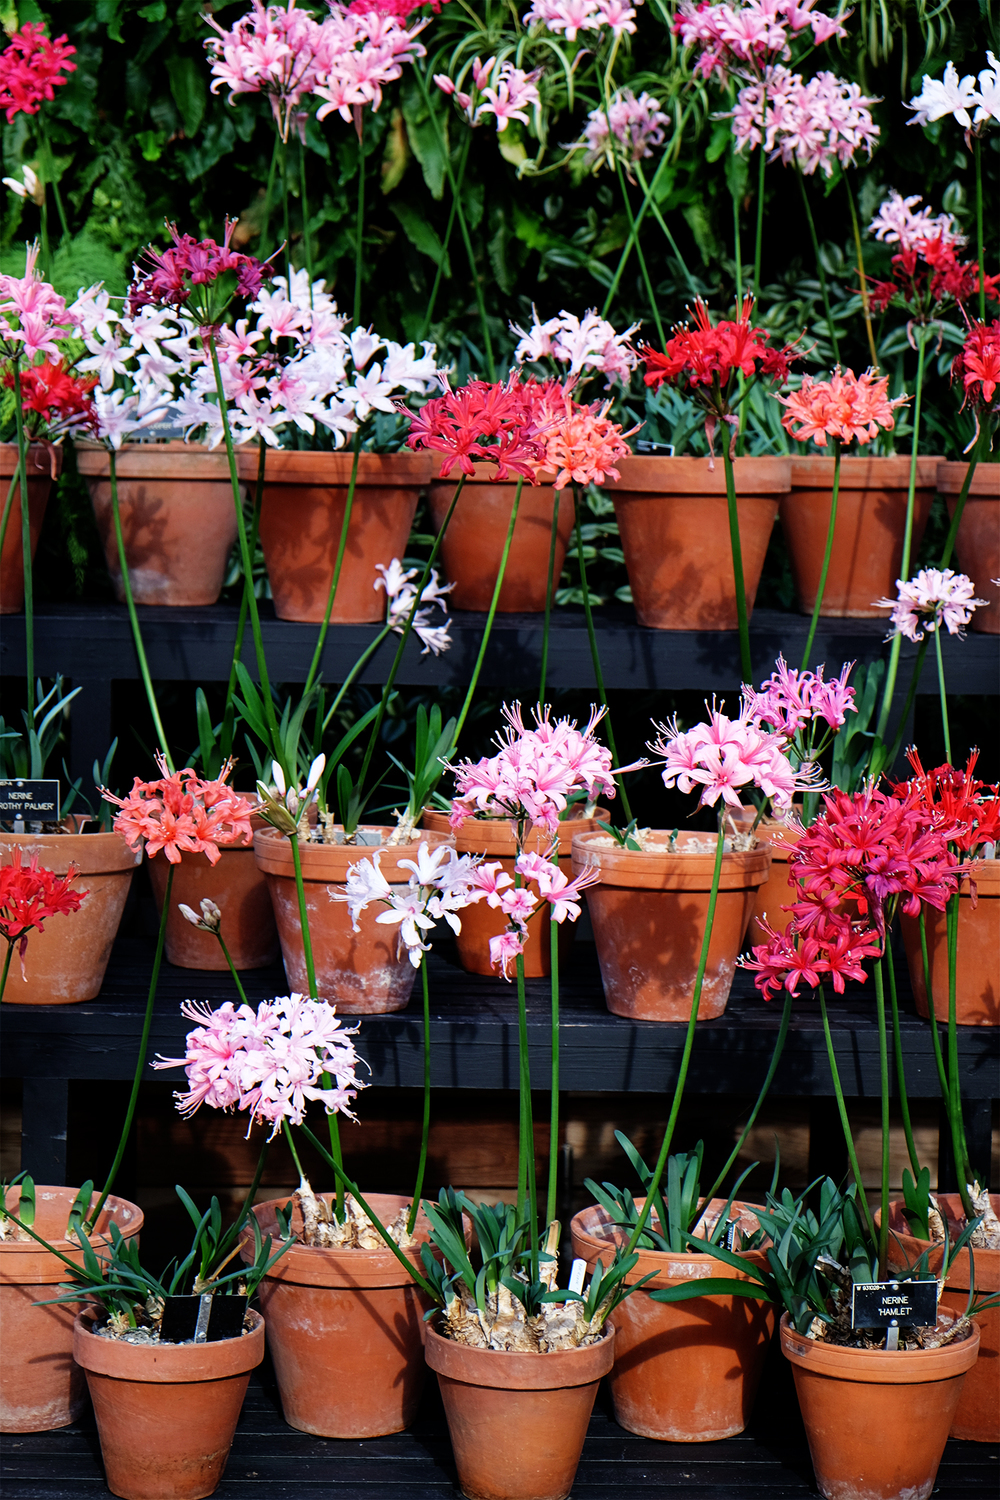 Nerine display in the Glasshouse, RHS Wisley